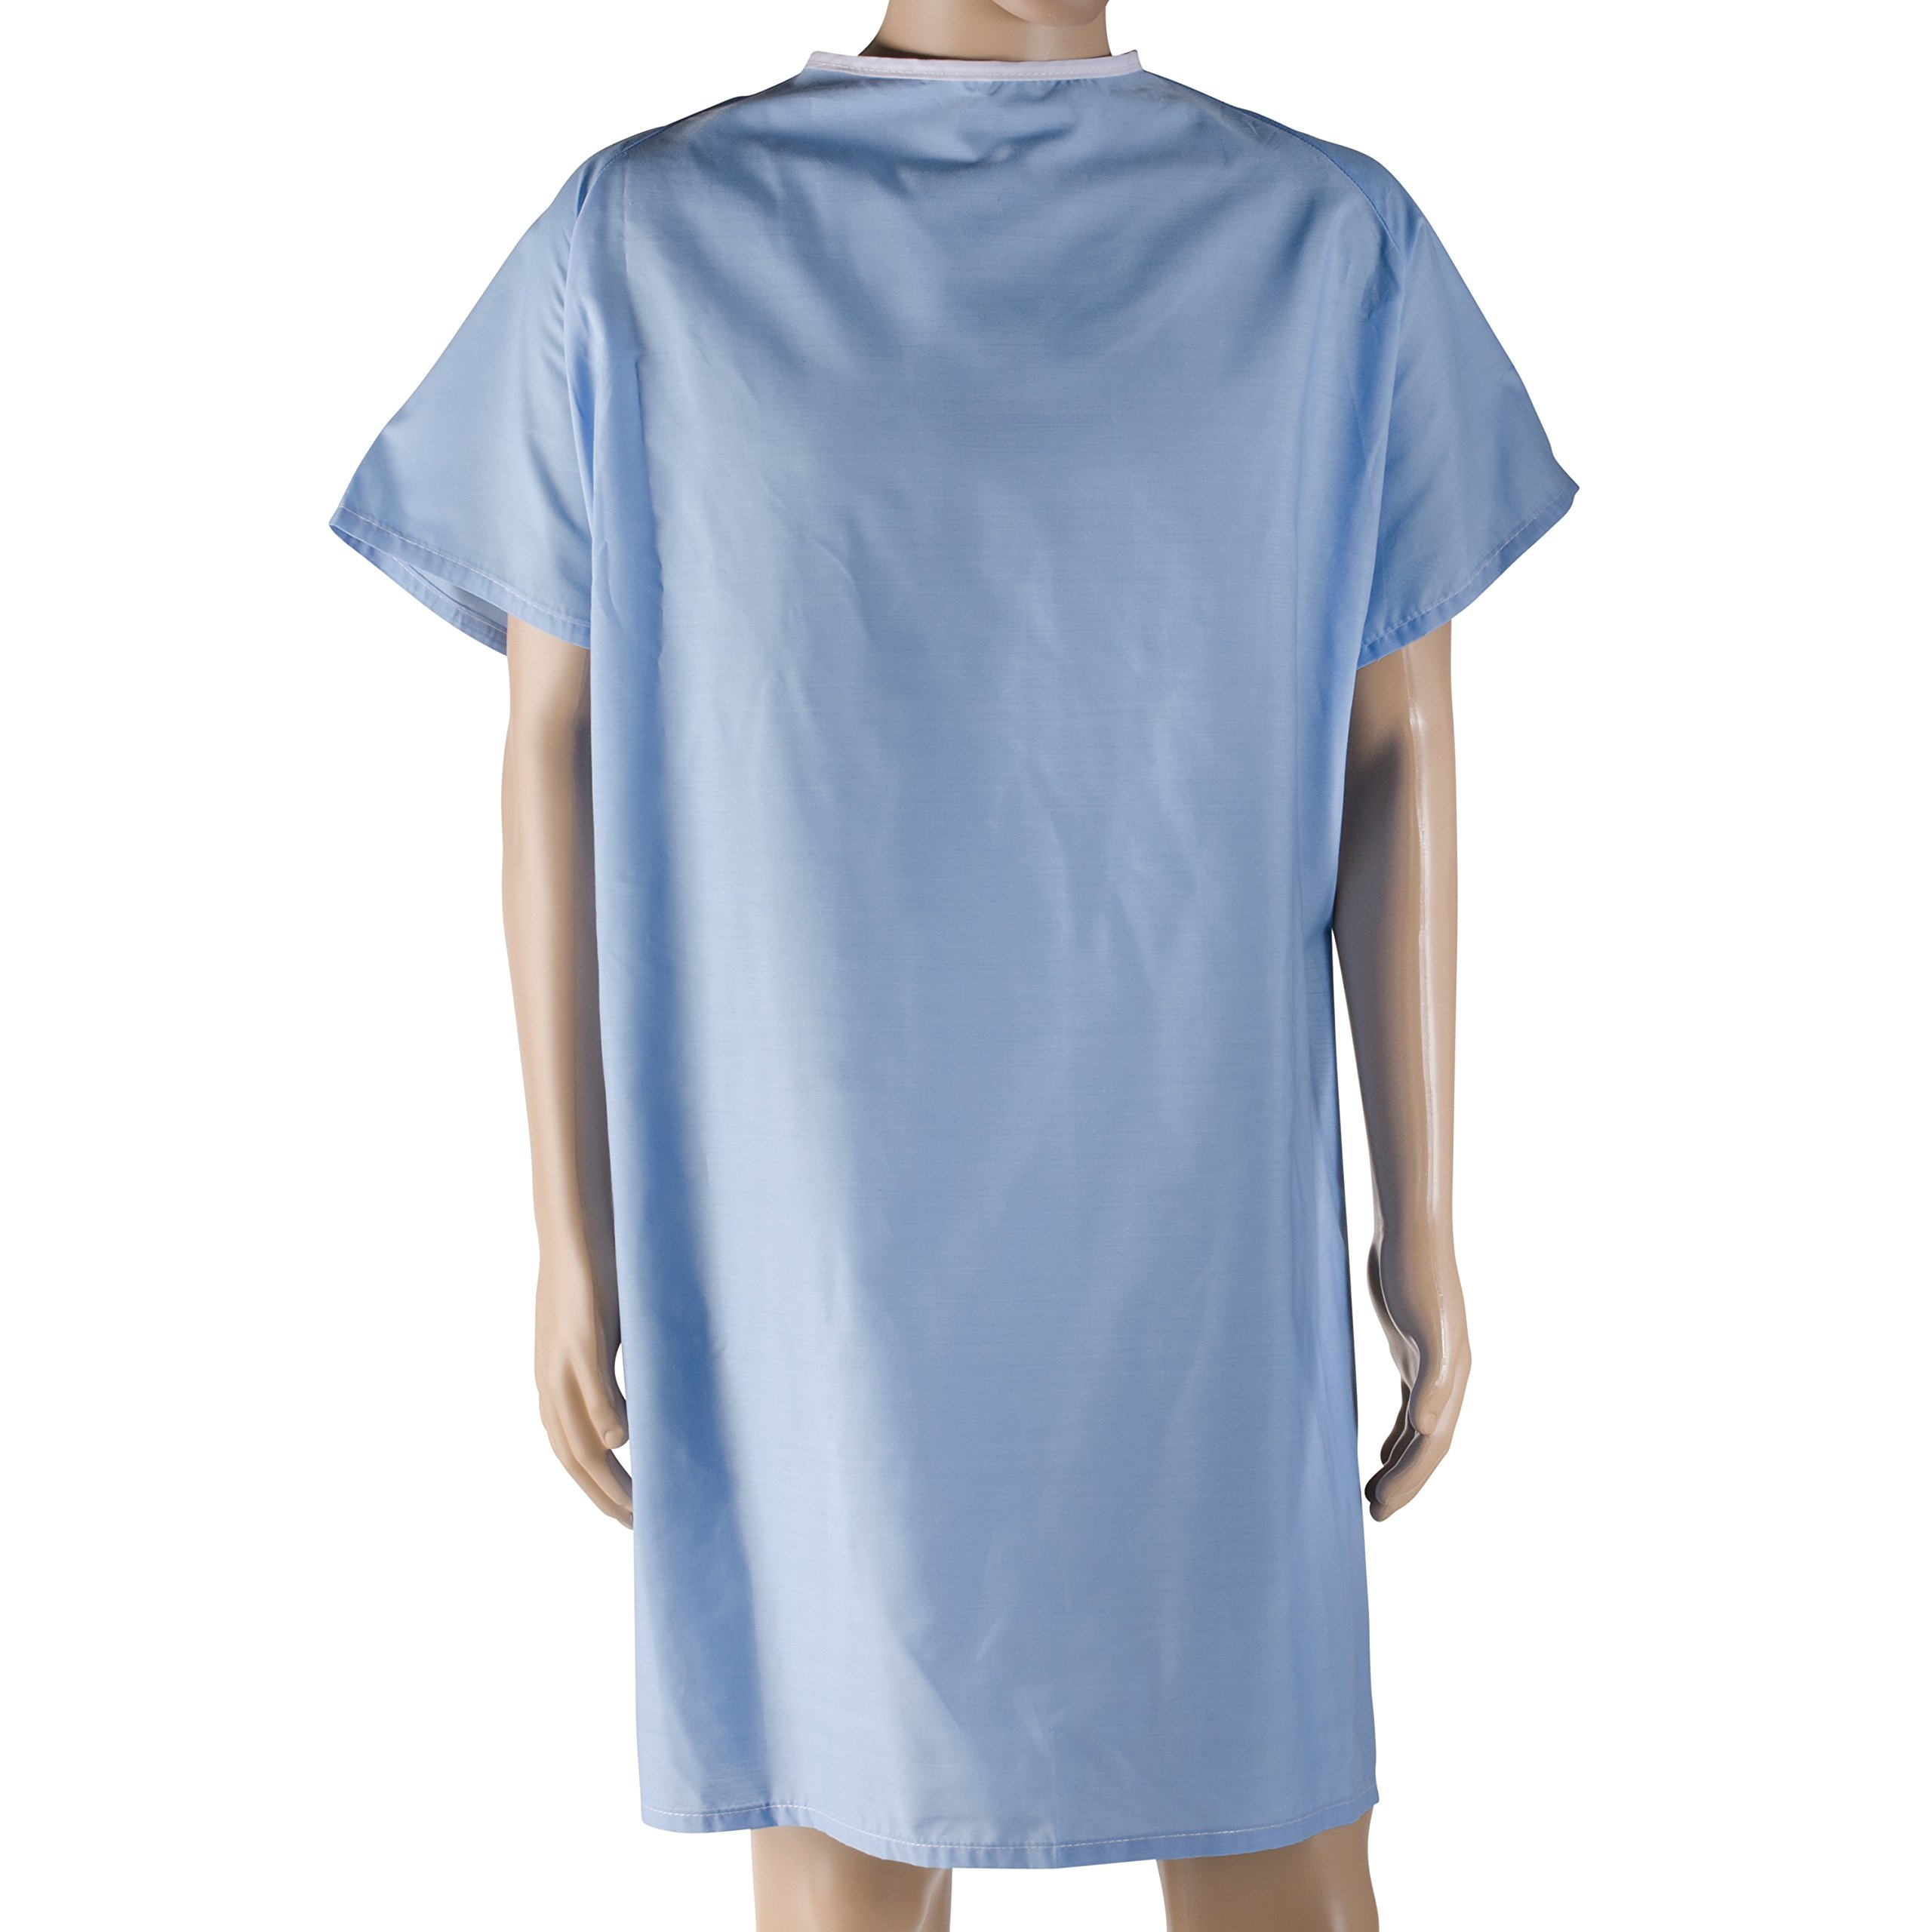 Cheap Patient S Gown, find Patient S Gown deals on line at Alibaba.com